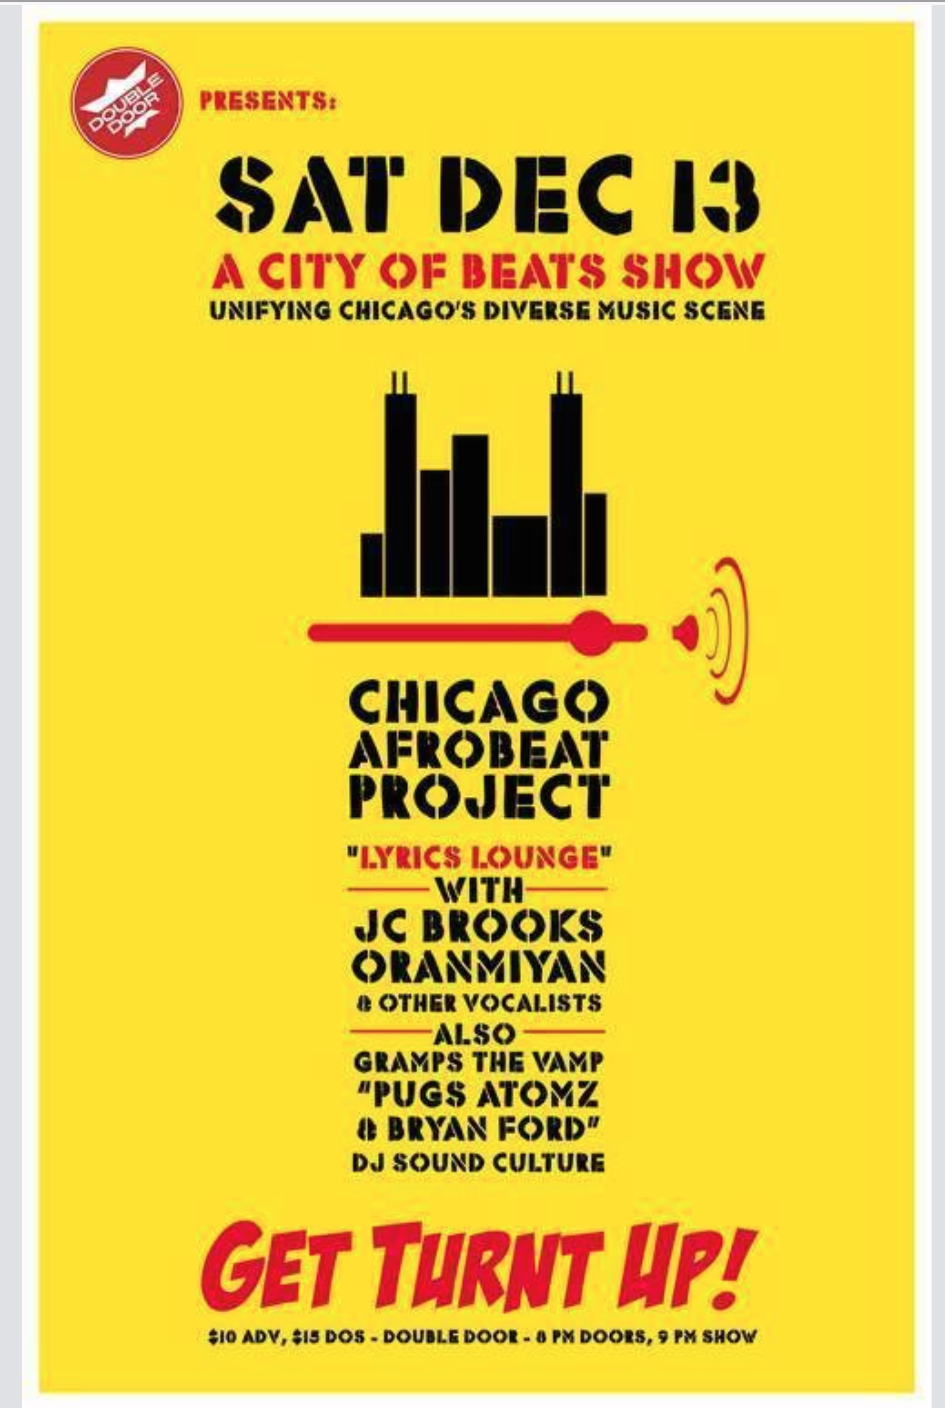 Bryan Ford Pugs Atomz Chicago Afrobeat Project